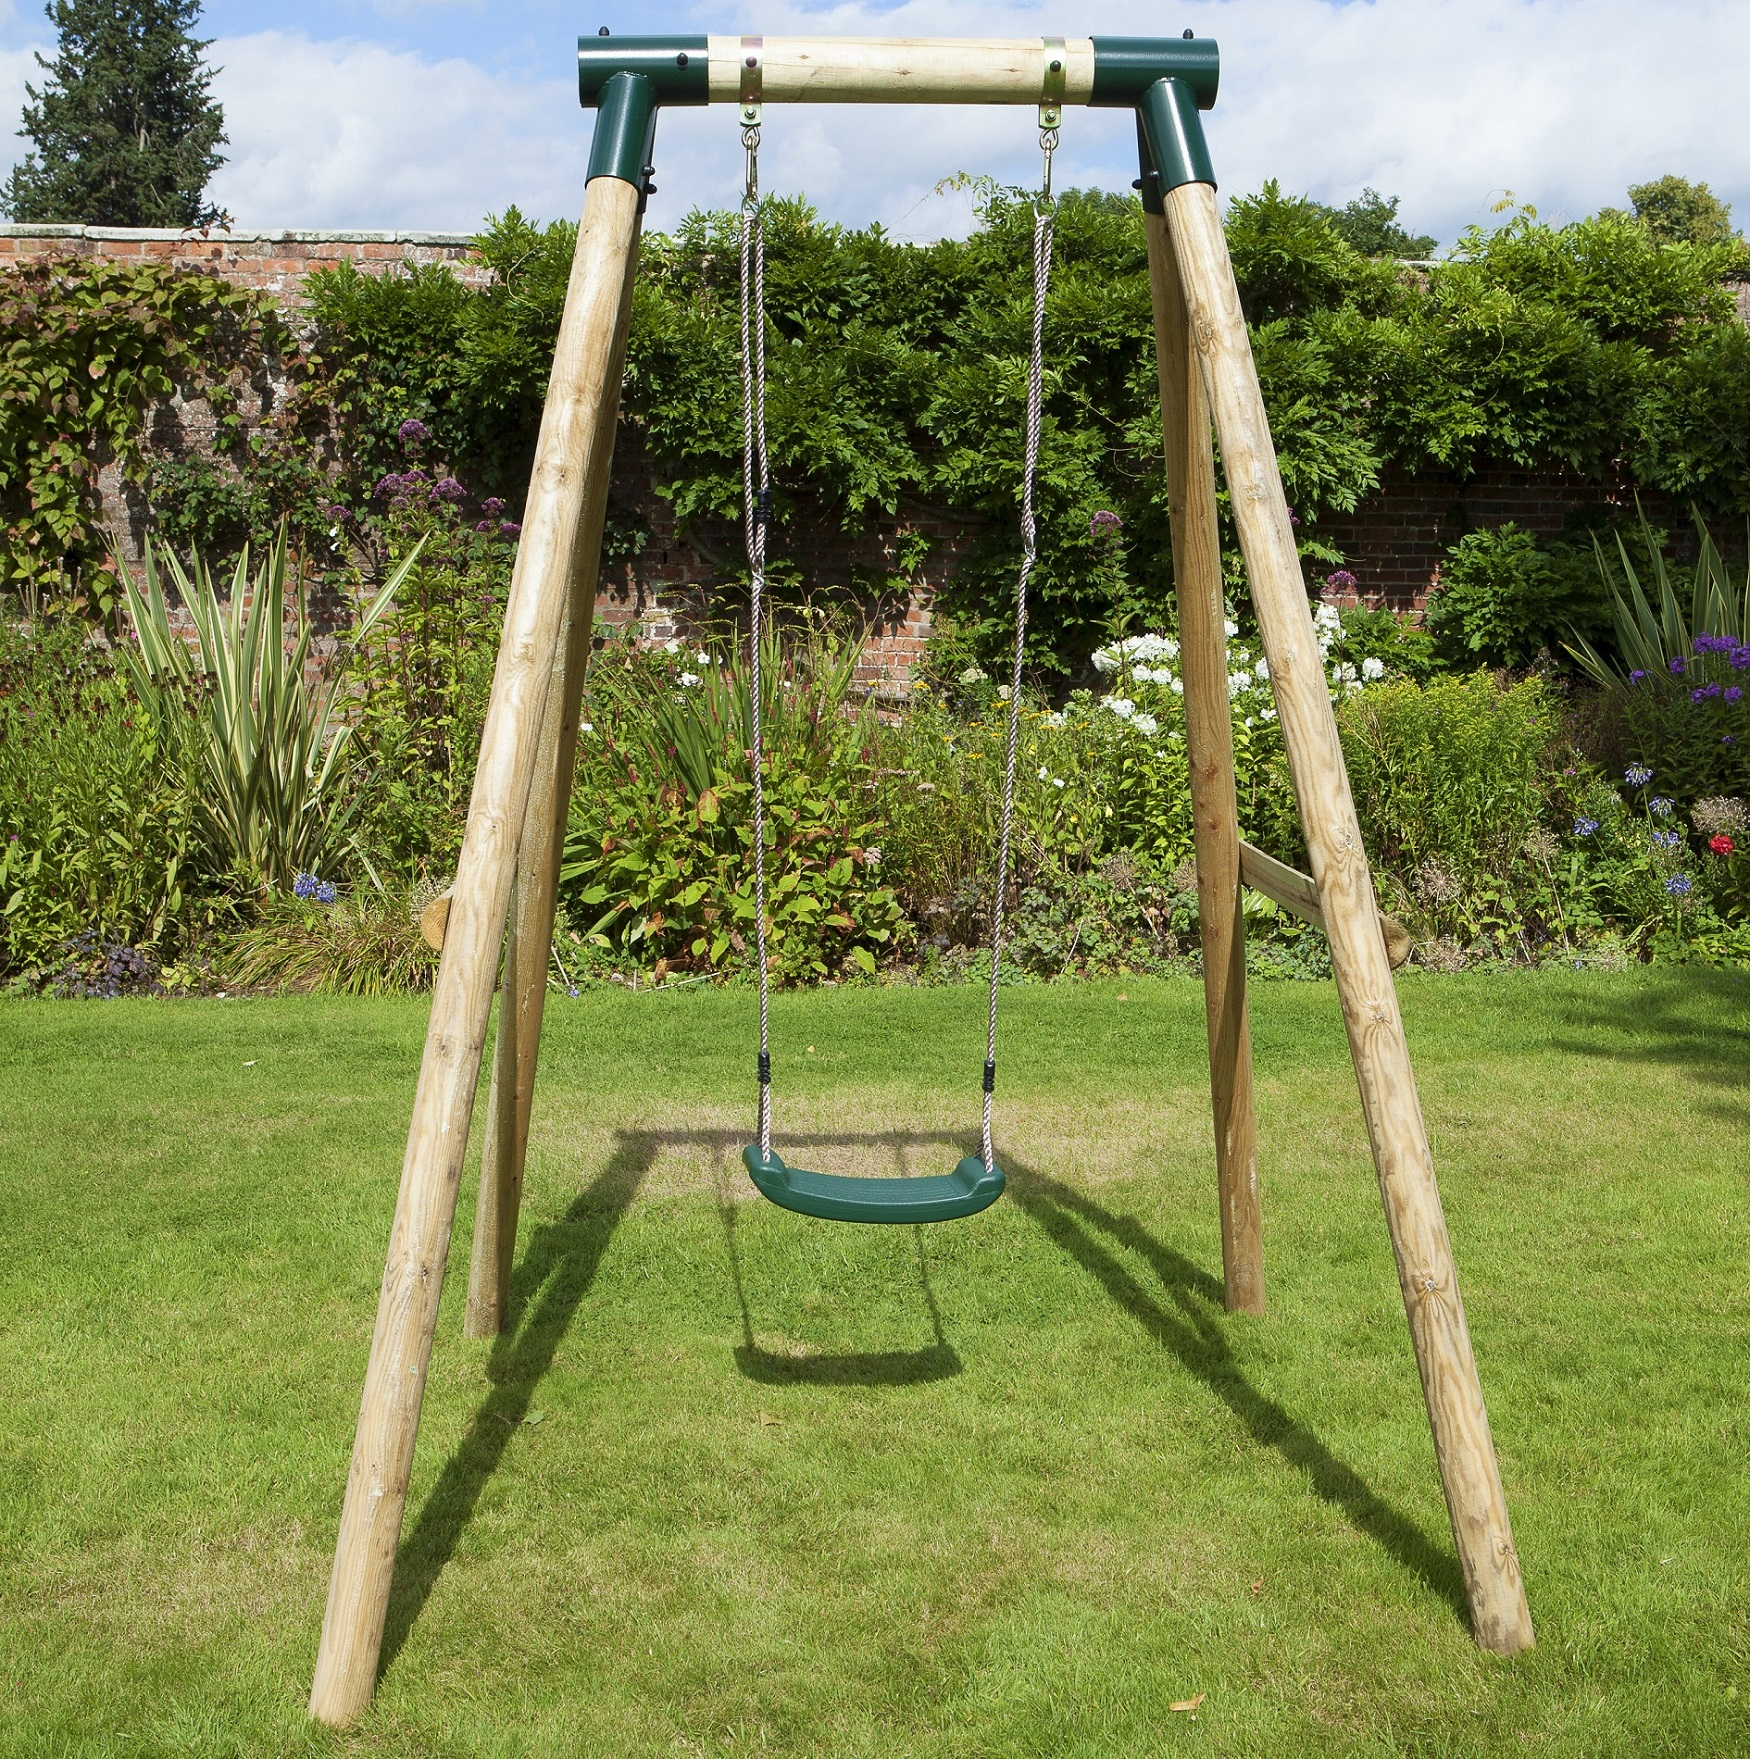 Rebo solar wooden garden swing set single swing for Building a wooden swing